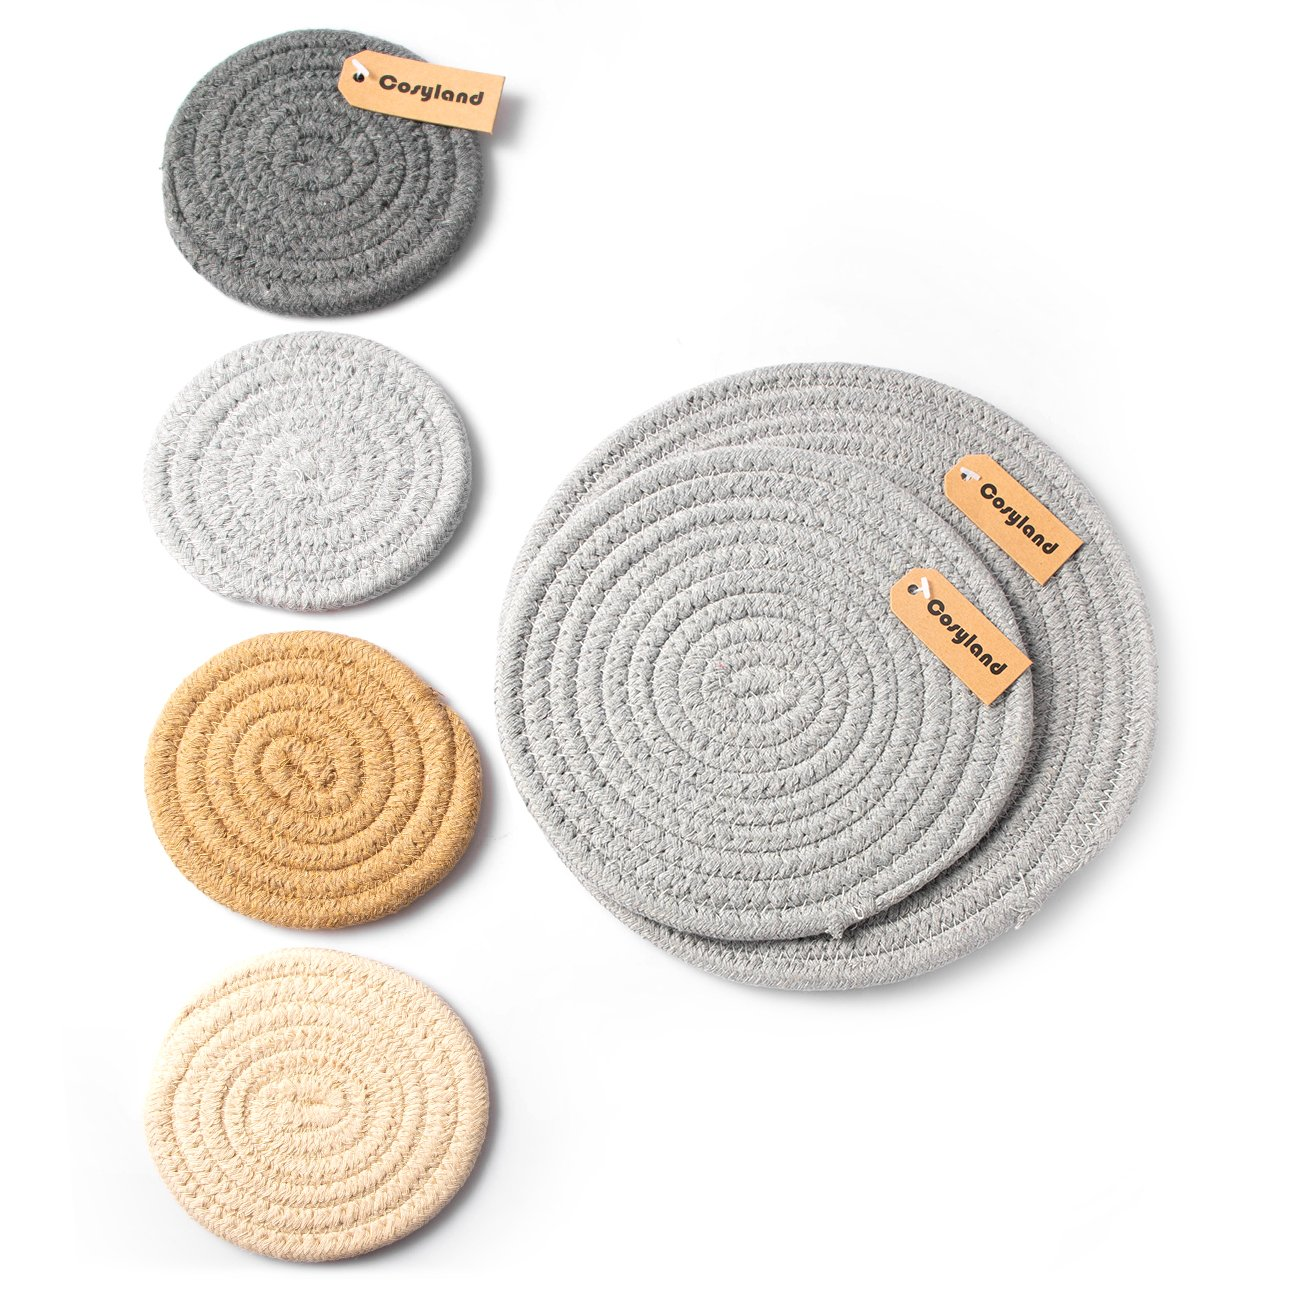 Cosyland Coasters for Drinks 6 Packs Cotton Braided Absorbent Round Placemats Heat Resistant Non Slip for Coffee Mugs Tea Cups Pots